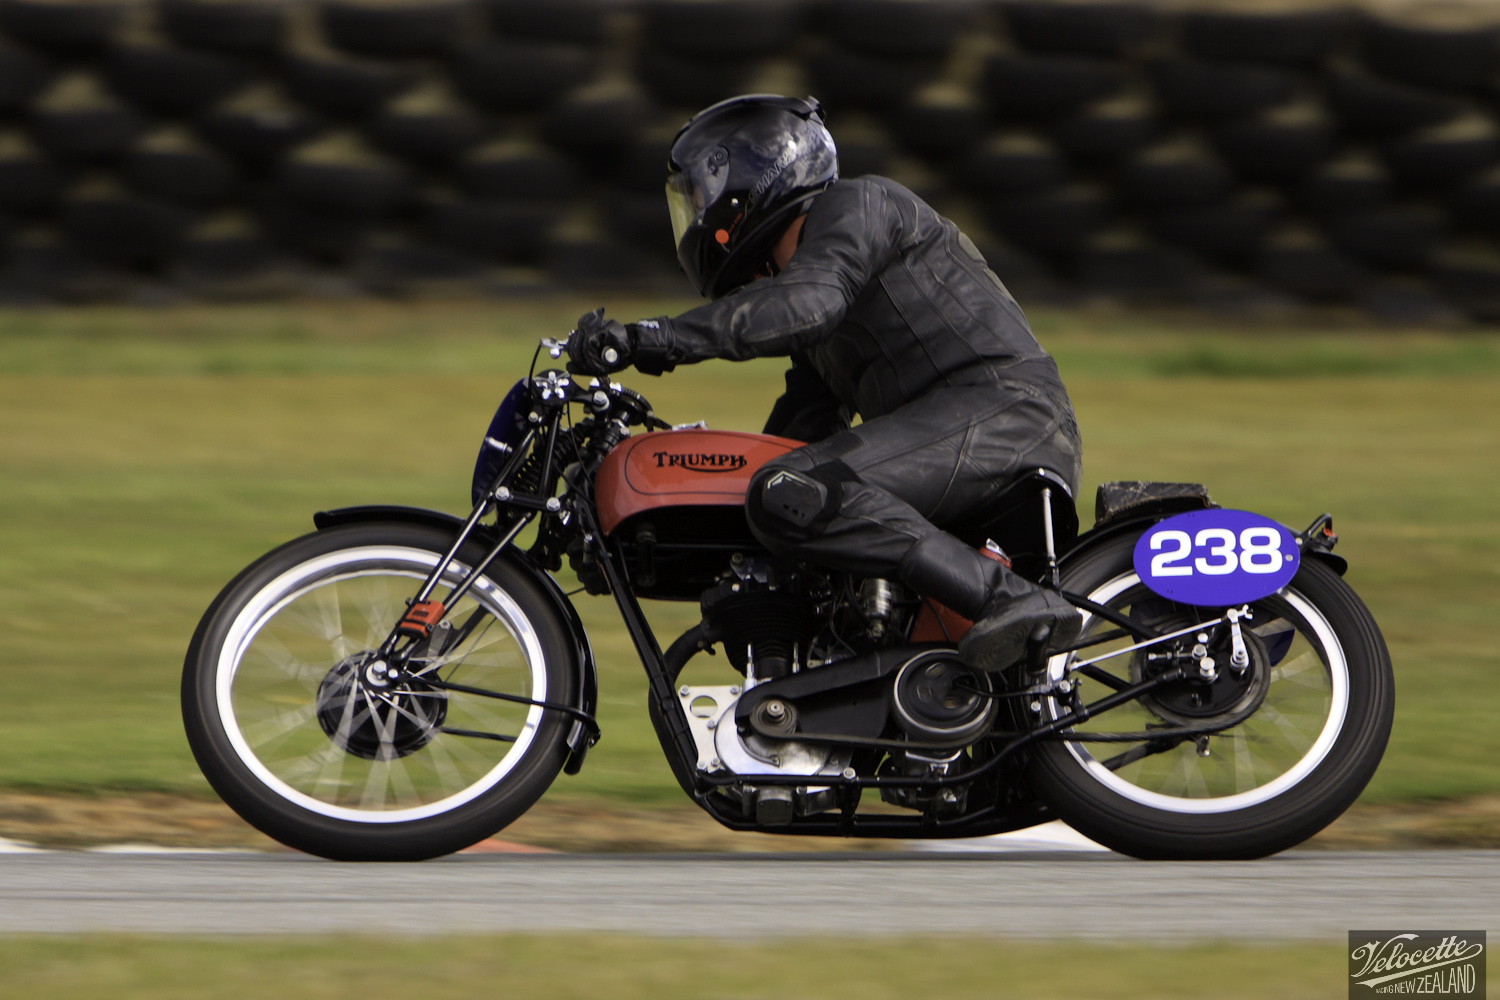 Bruce Aitken, Burt Munro Challenge, Classic Pre '63 with Girder Forks, Rider 238, Teretonga Circuit races, Triumph T80 350